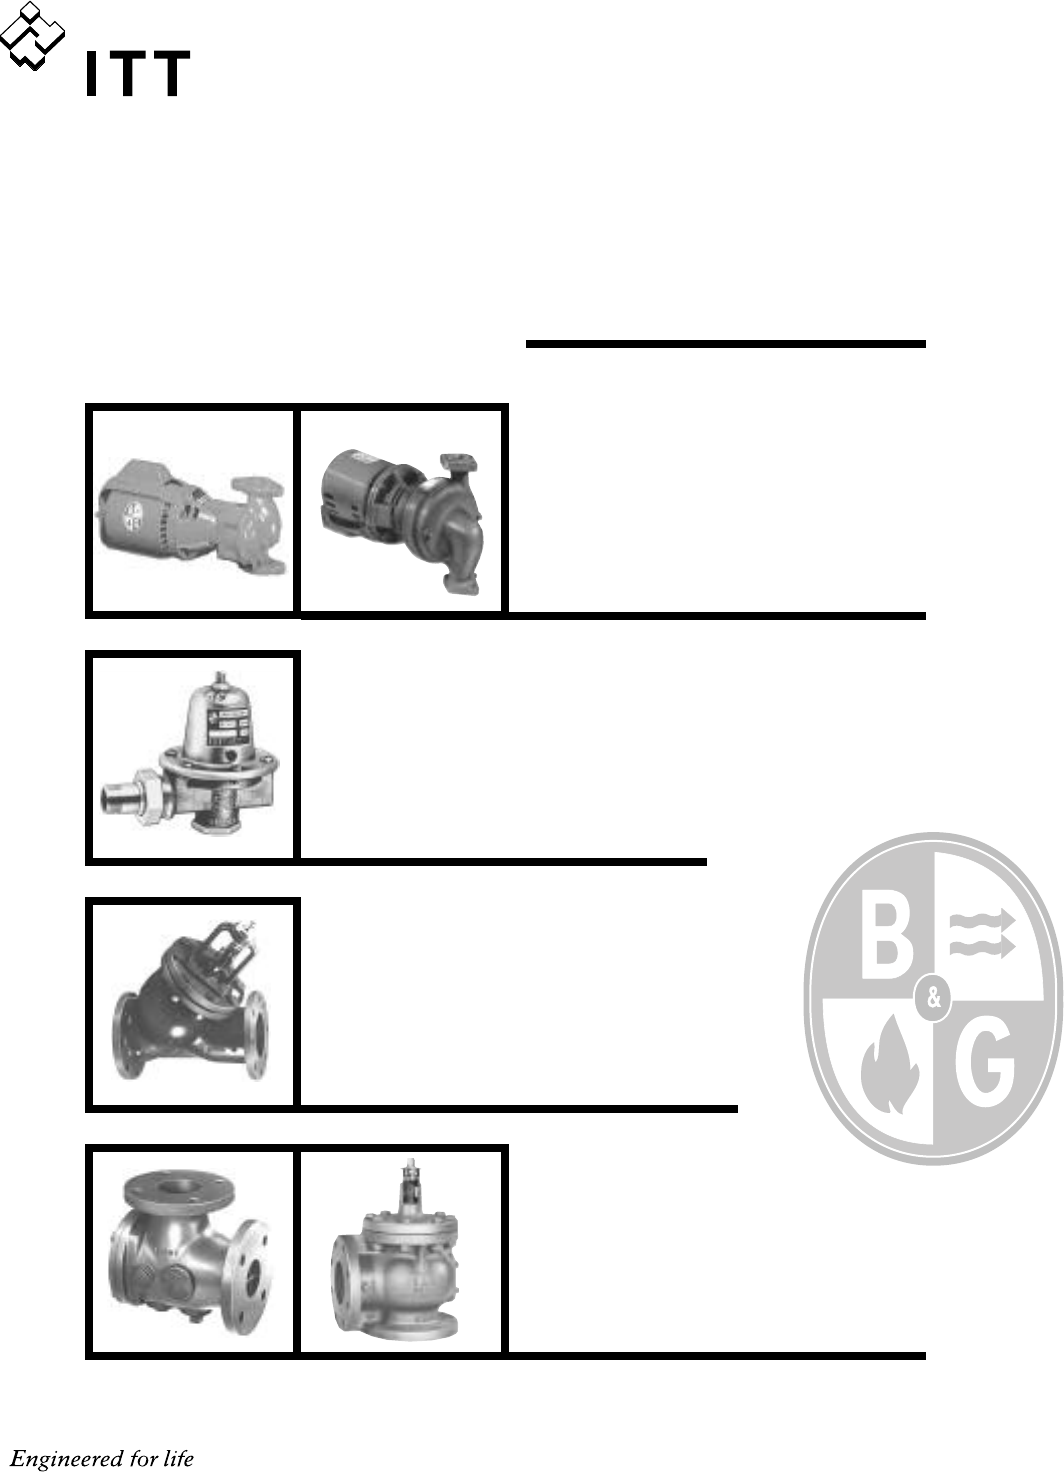 FREEZING Bell /& Gossett 118473 Coupler Coupling Assembly fits Series 60 others/ FREE E-BOOK